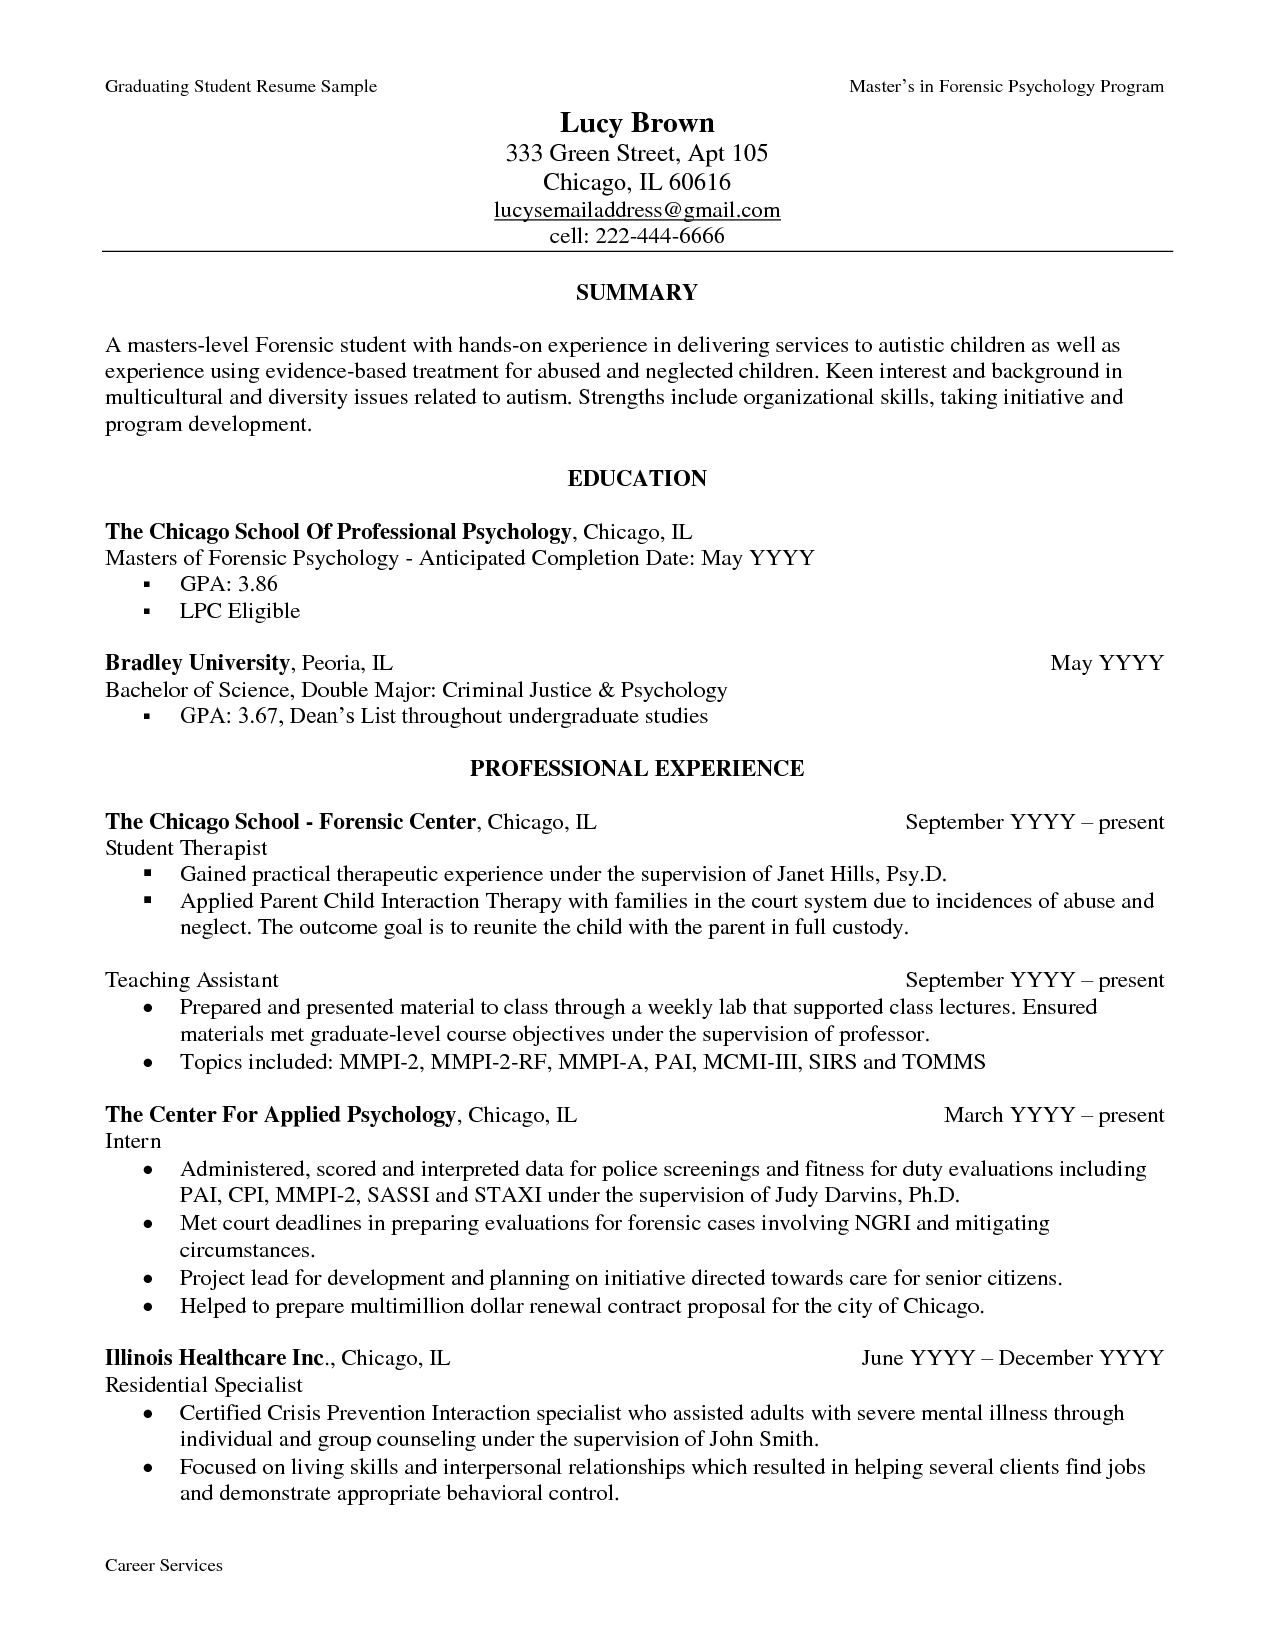 How To Write A Resume For Graduate School example of academic